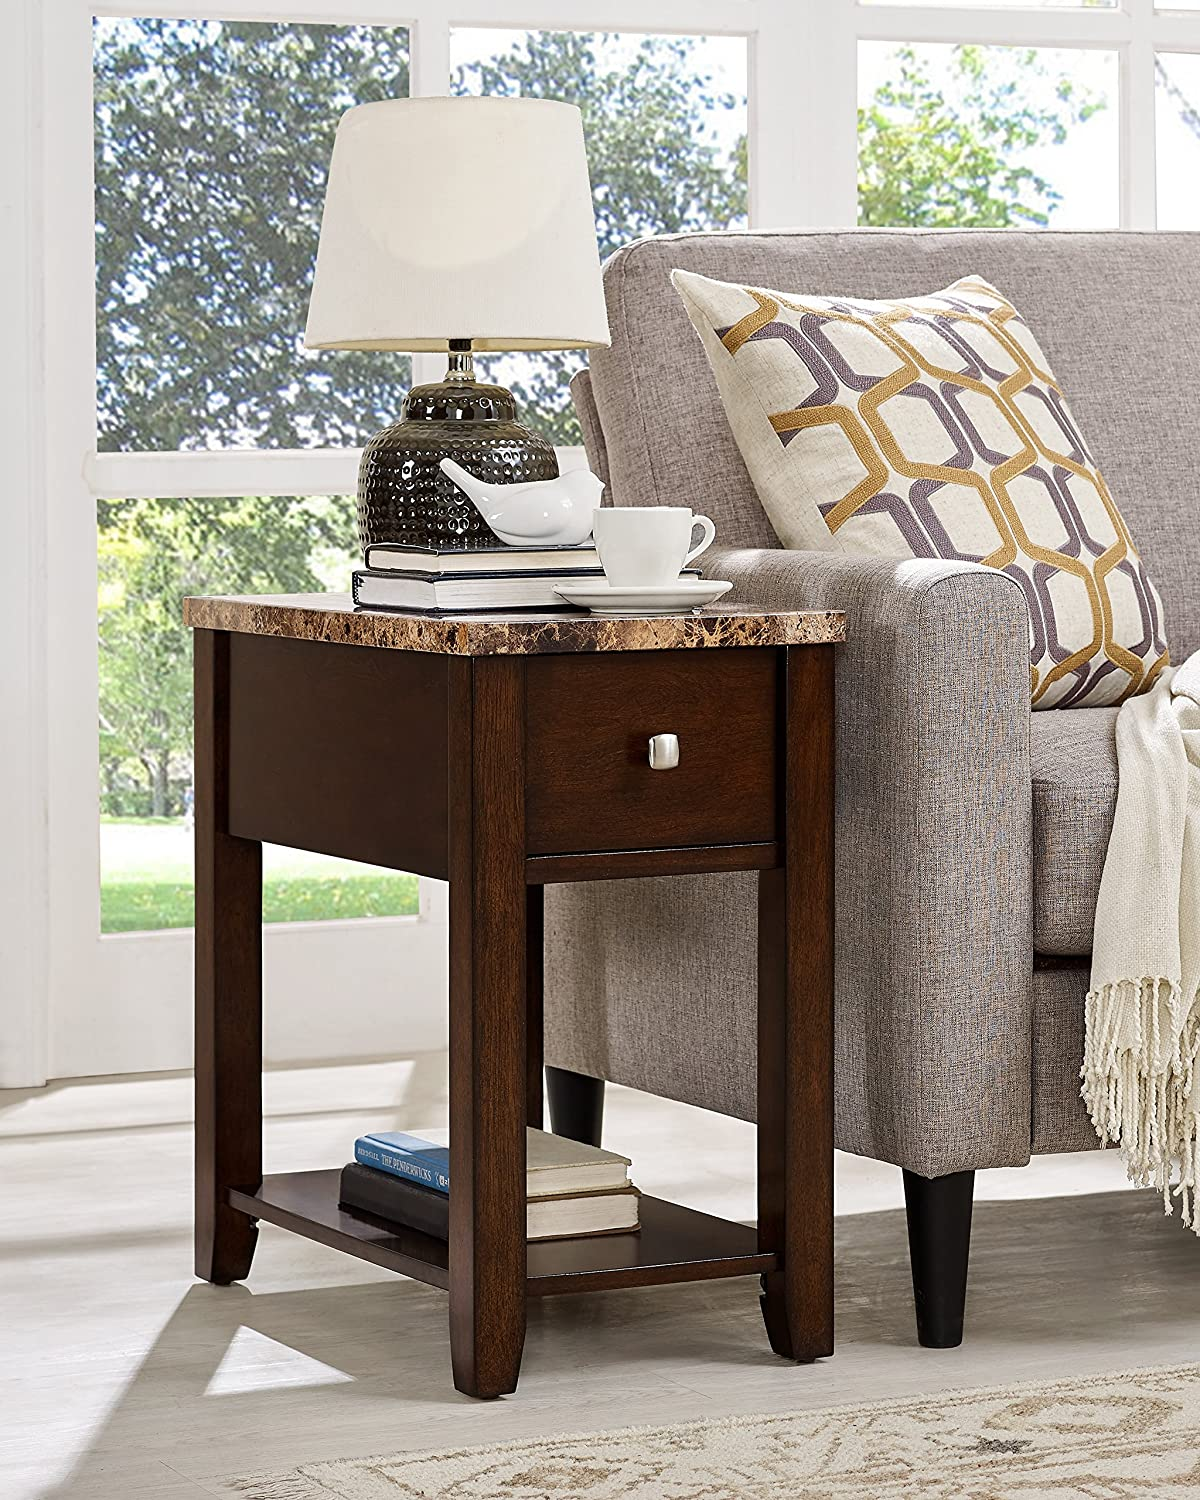 Roundhill Furniture Chair/End Table, Oak Finish 3300OAK